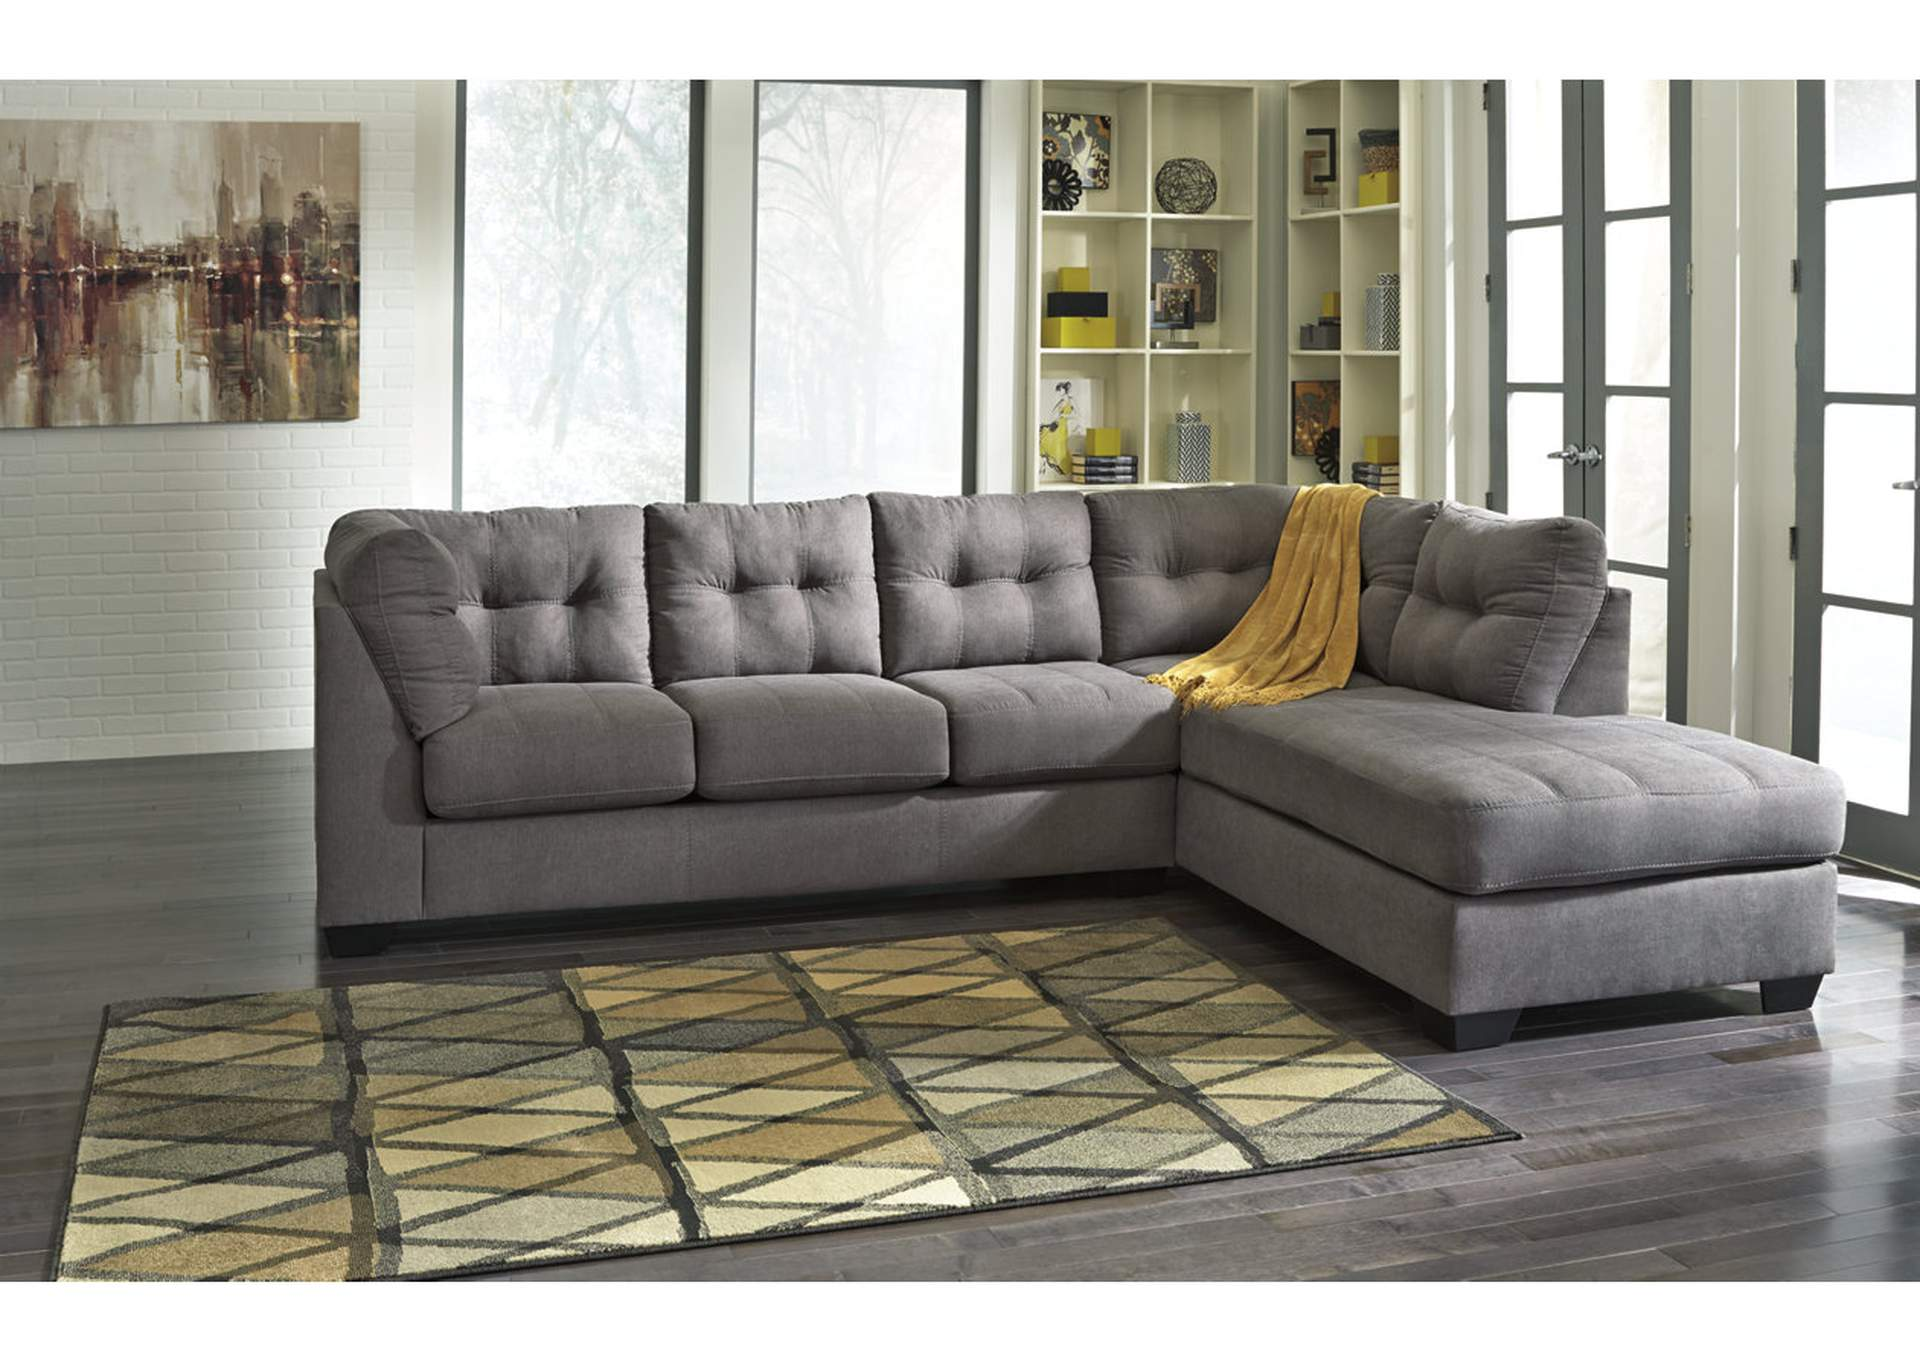 National Furniture Outlet Westwego Model National Furniture Outlet  Westwego La Maier Charcoal Right Arm .